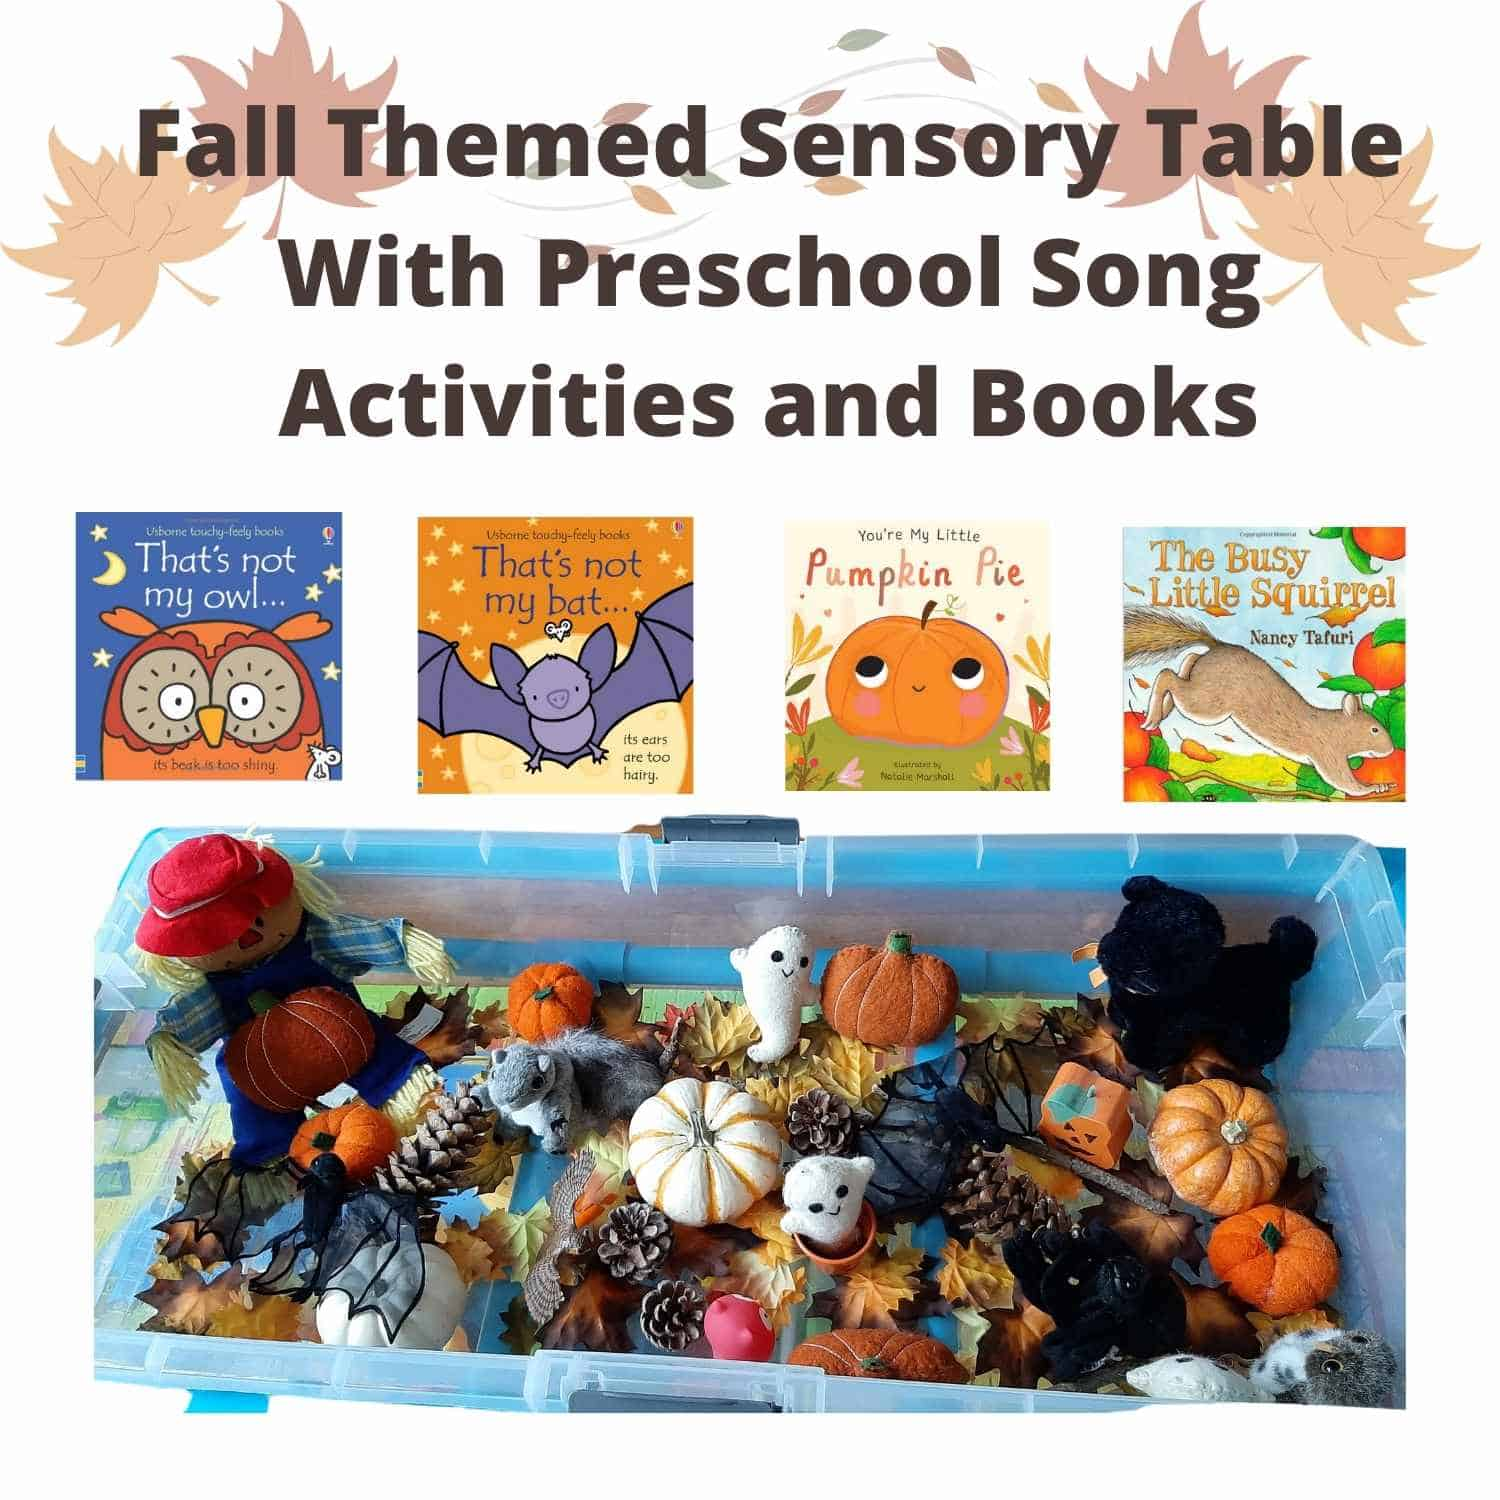 Fall Themed Sensory Table With Preschool Song Activities and Books